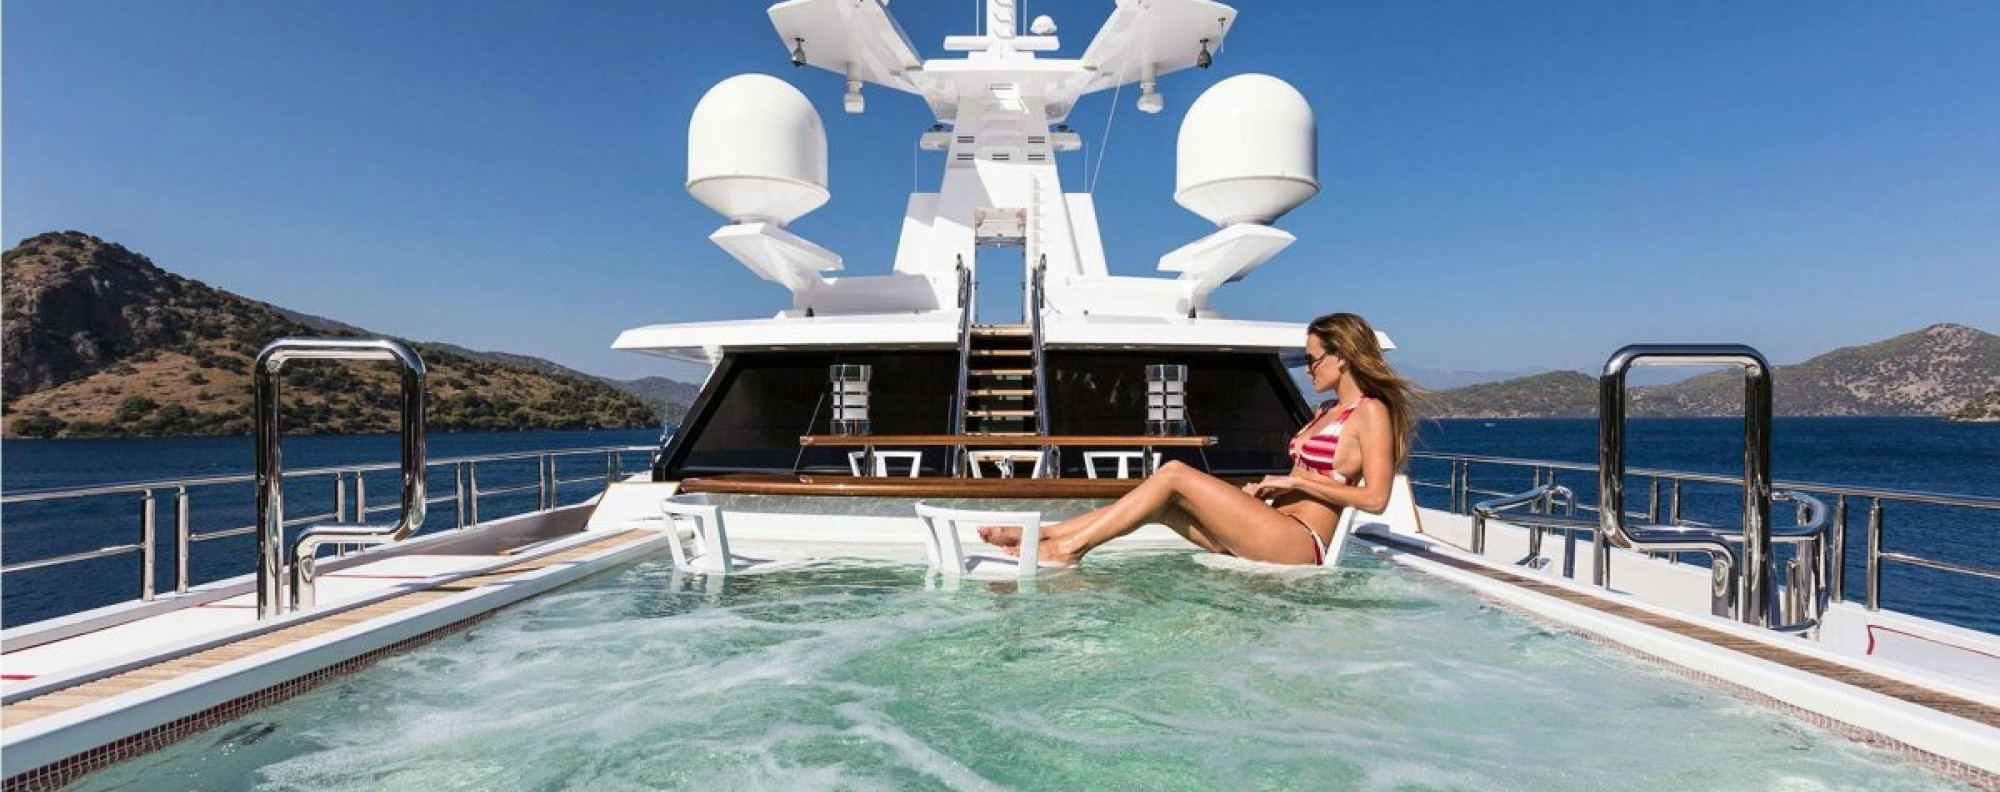 A look inside 10 of the most luxurious superyachts on sale at Miami's premier yacht show